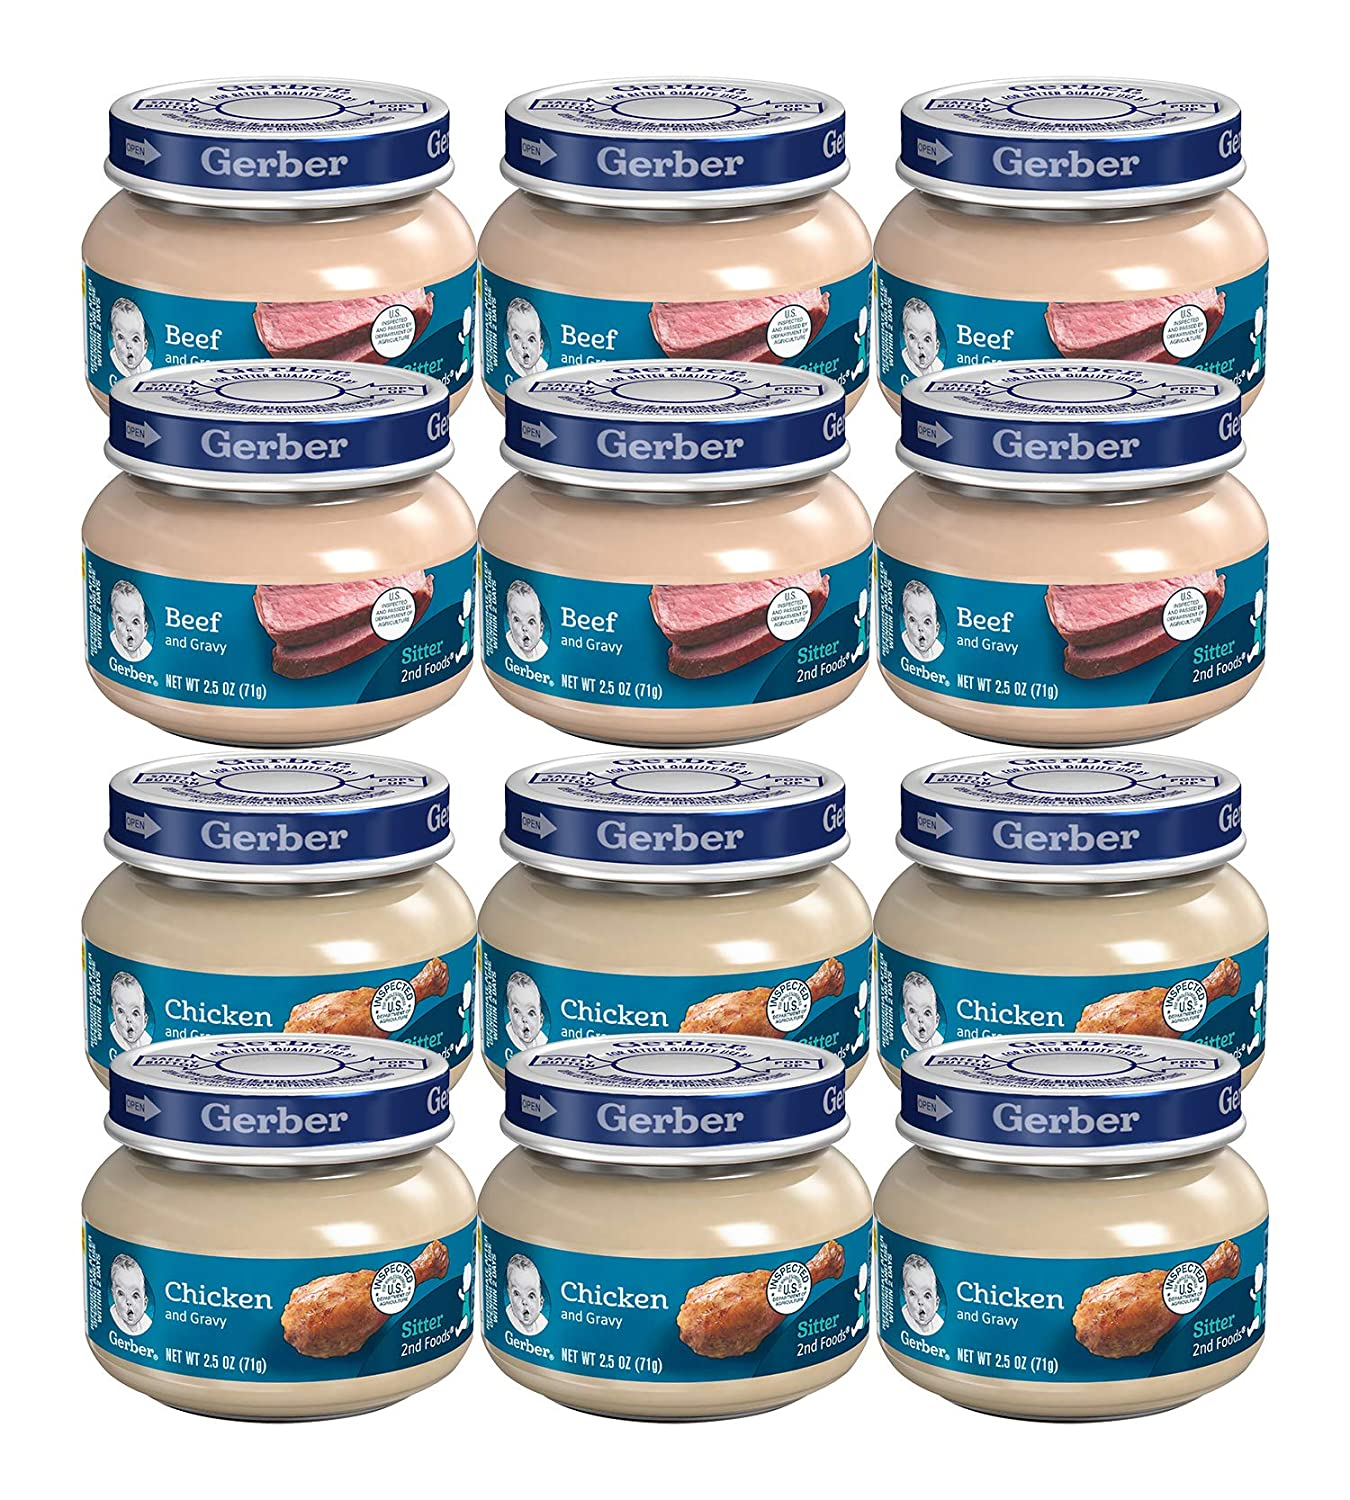 Gerber 2nd Foods: Meats Beef and Gravy, 2.5-Ounce 6 Jars and Chicken & Chicken Gravy, 2.5-Ounce 6 Jars (12 Jars Total)